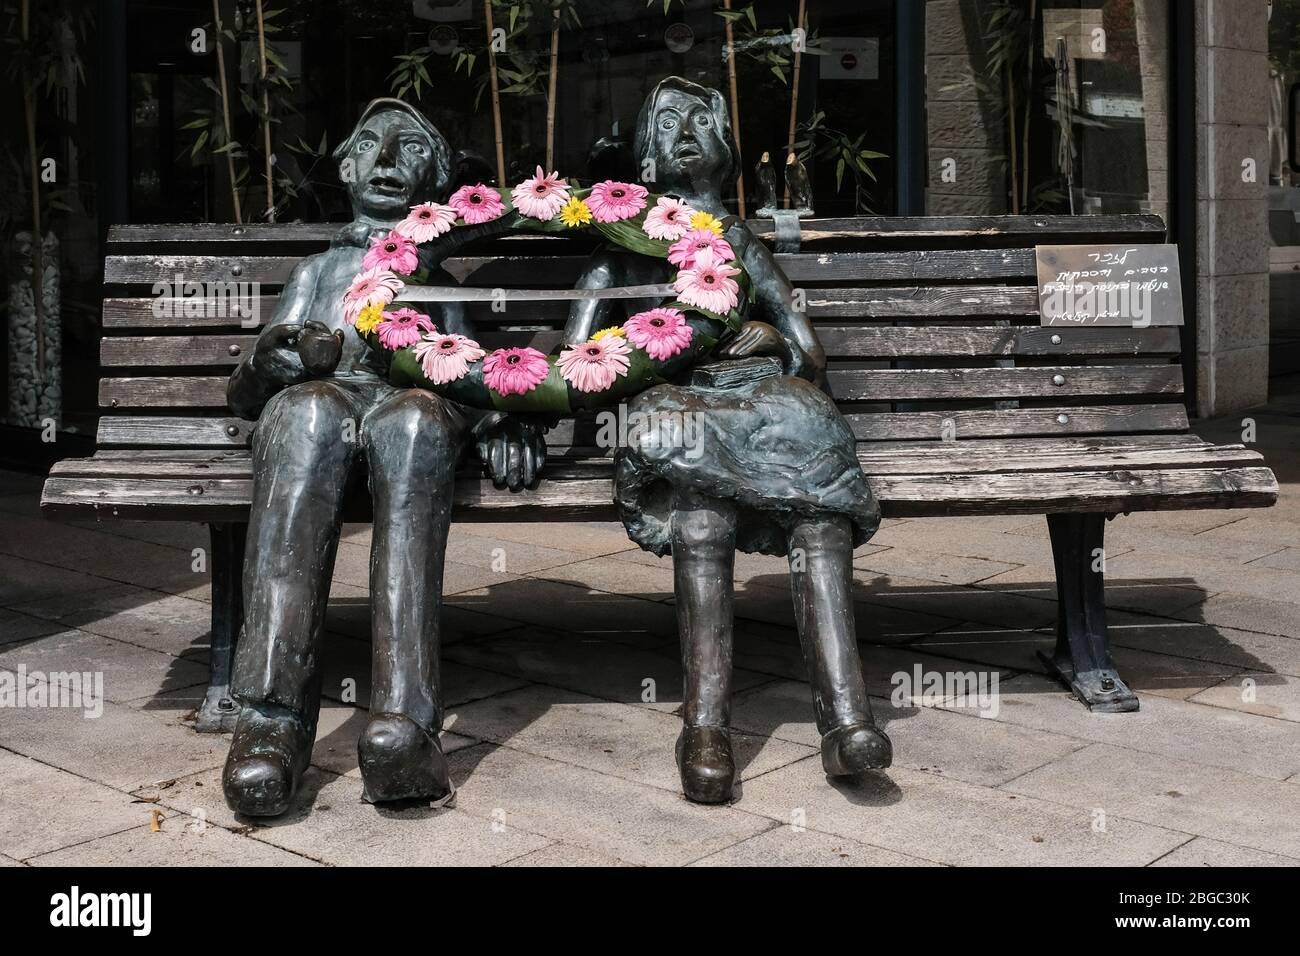 Jerusalem, Israel. 21st Apr, 2020. A flower wreath lies on a statue created by Dr. Martin Kizelstein, Holocaust survivor, in memory of grandmothers and grandfathers that perished in the Holocaust, on Holocaust and Heroism Remembrance Day. Credit: Nir Alon/Alamy Live News Stock Photo